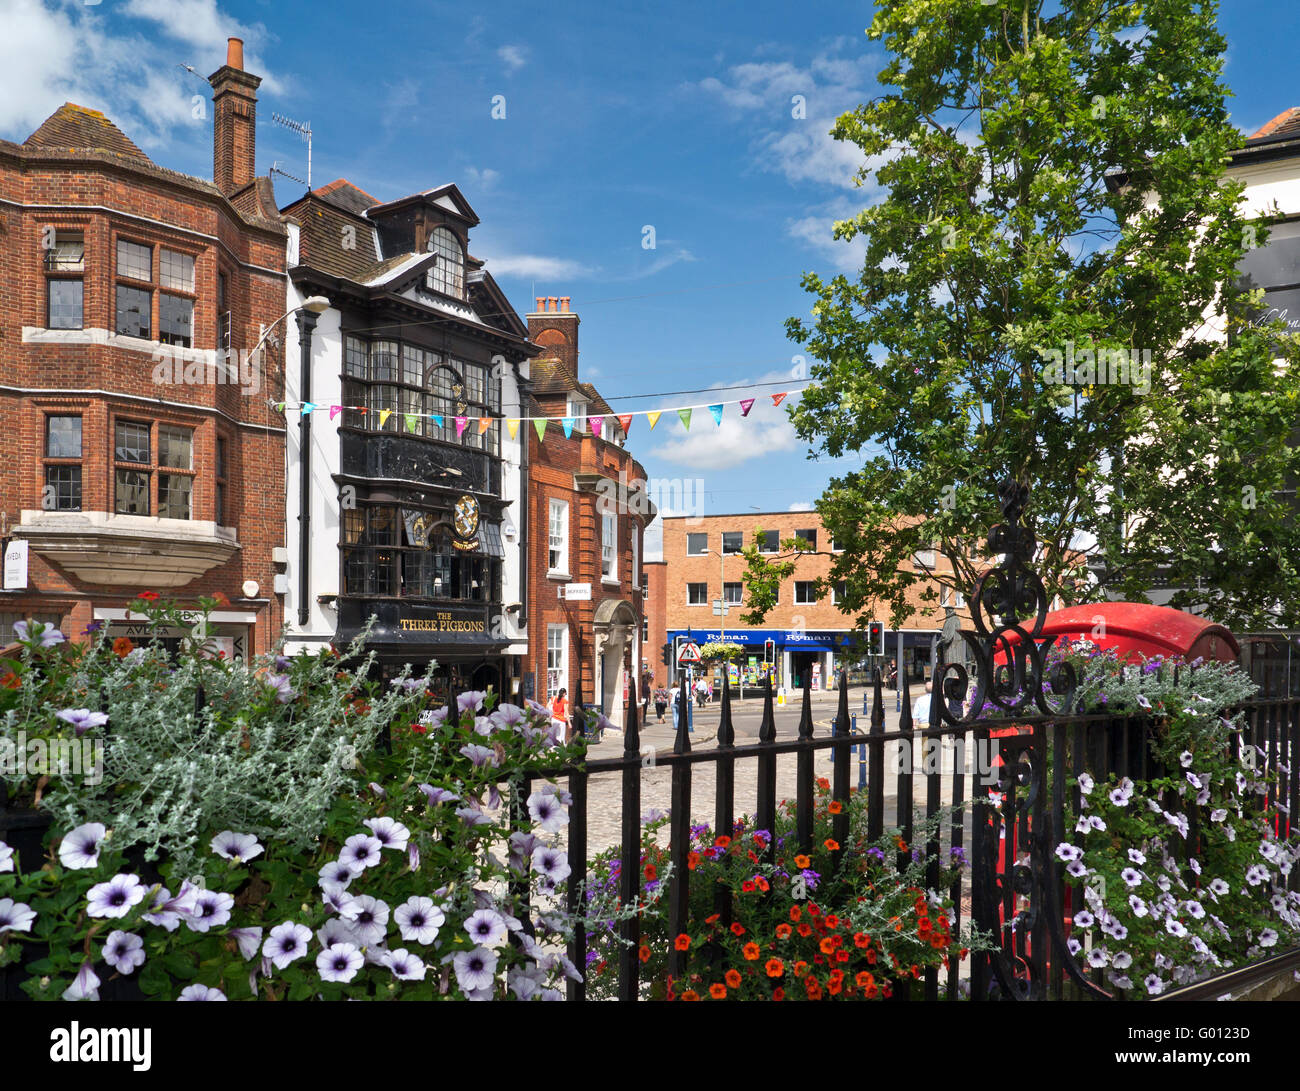 Guildford High Street with petunias and traditional red telephone box Three Pidgeons public house Guildford Surrey - Stock Image